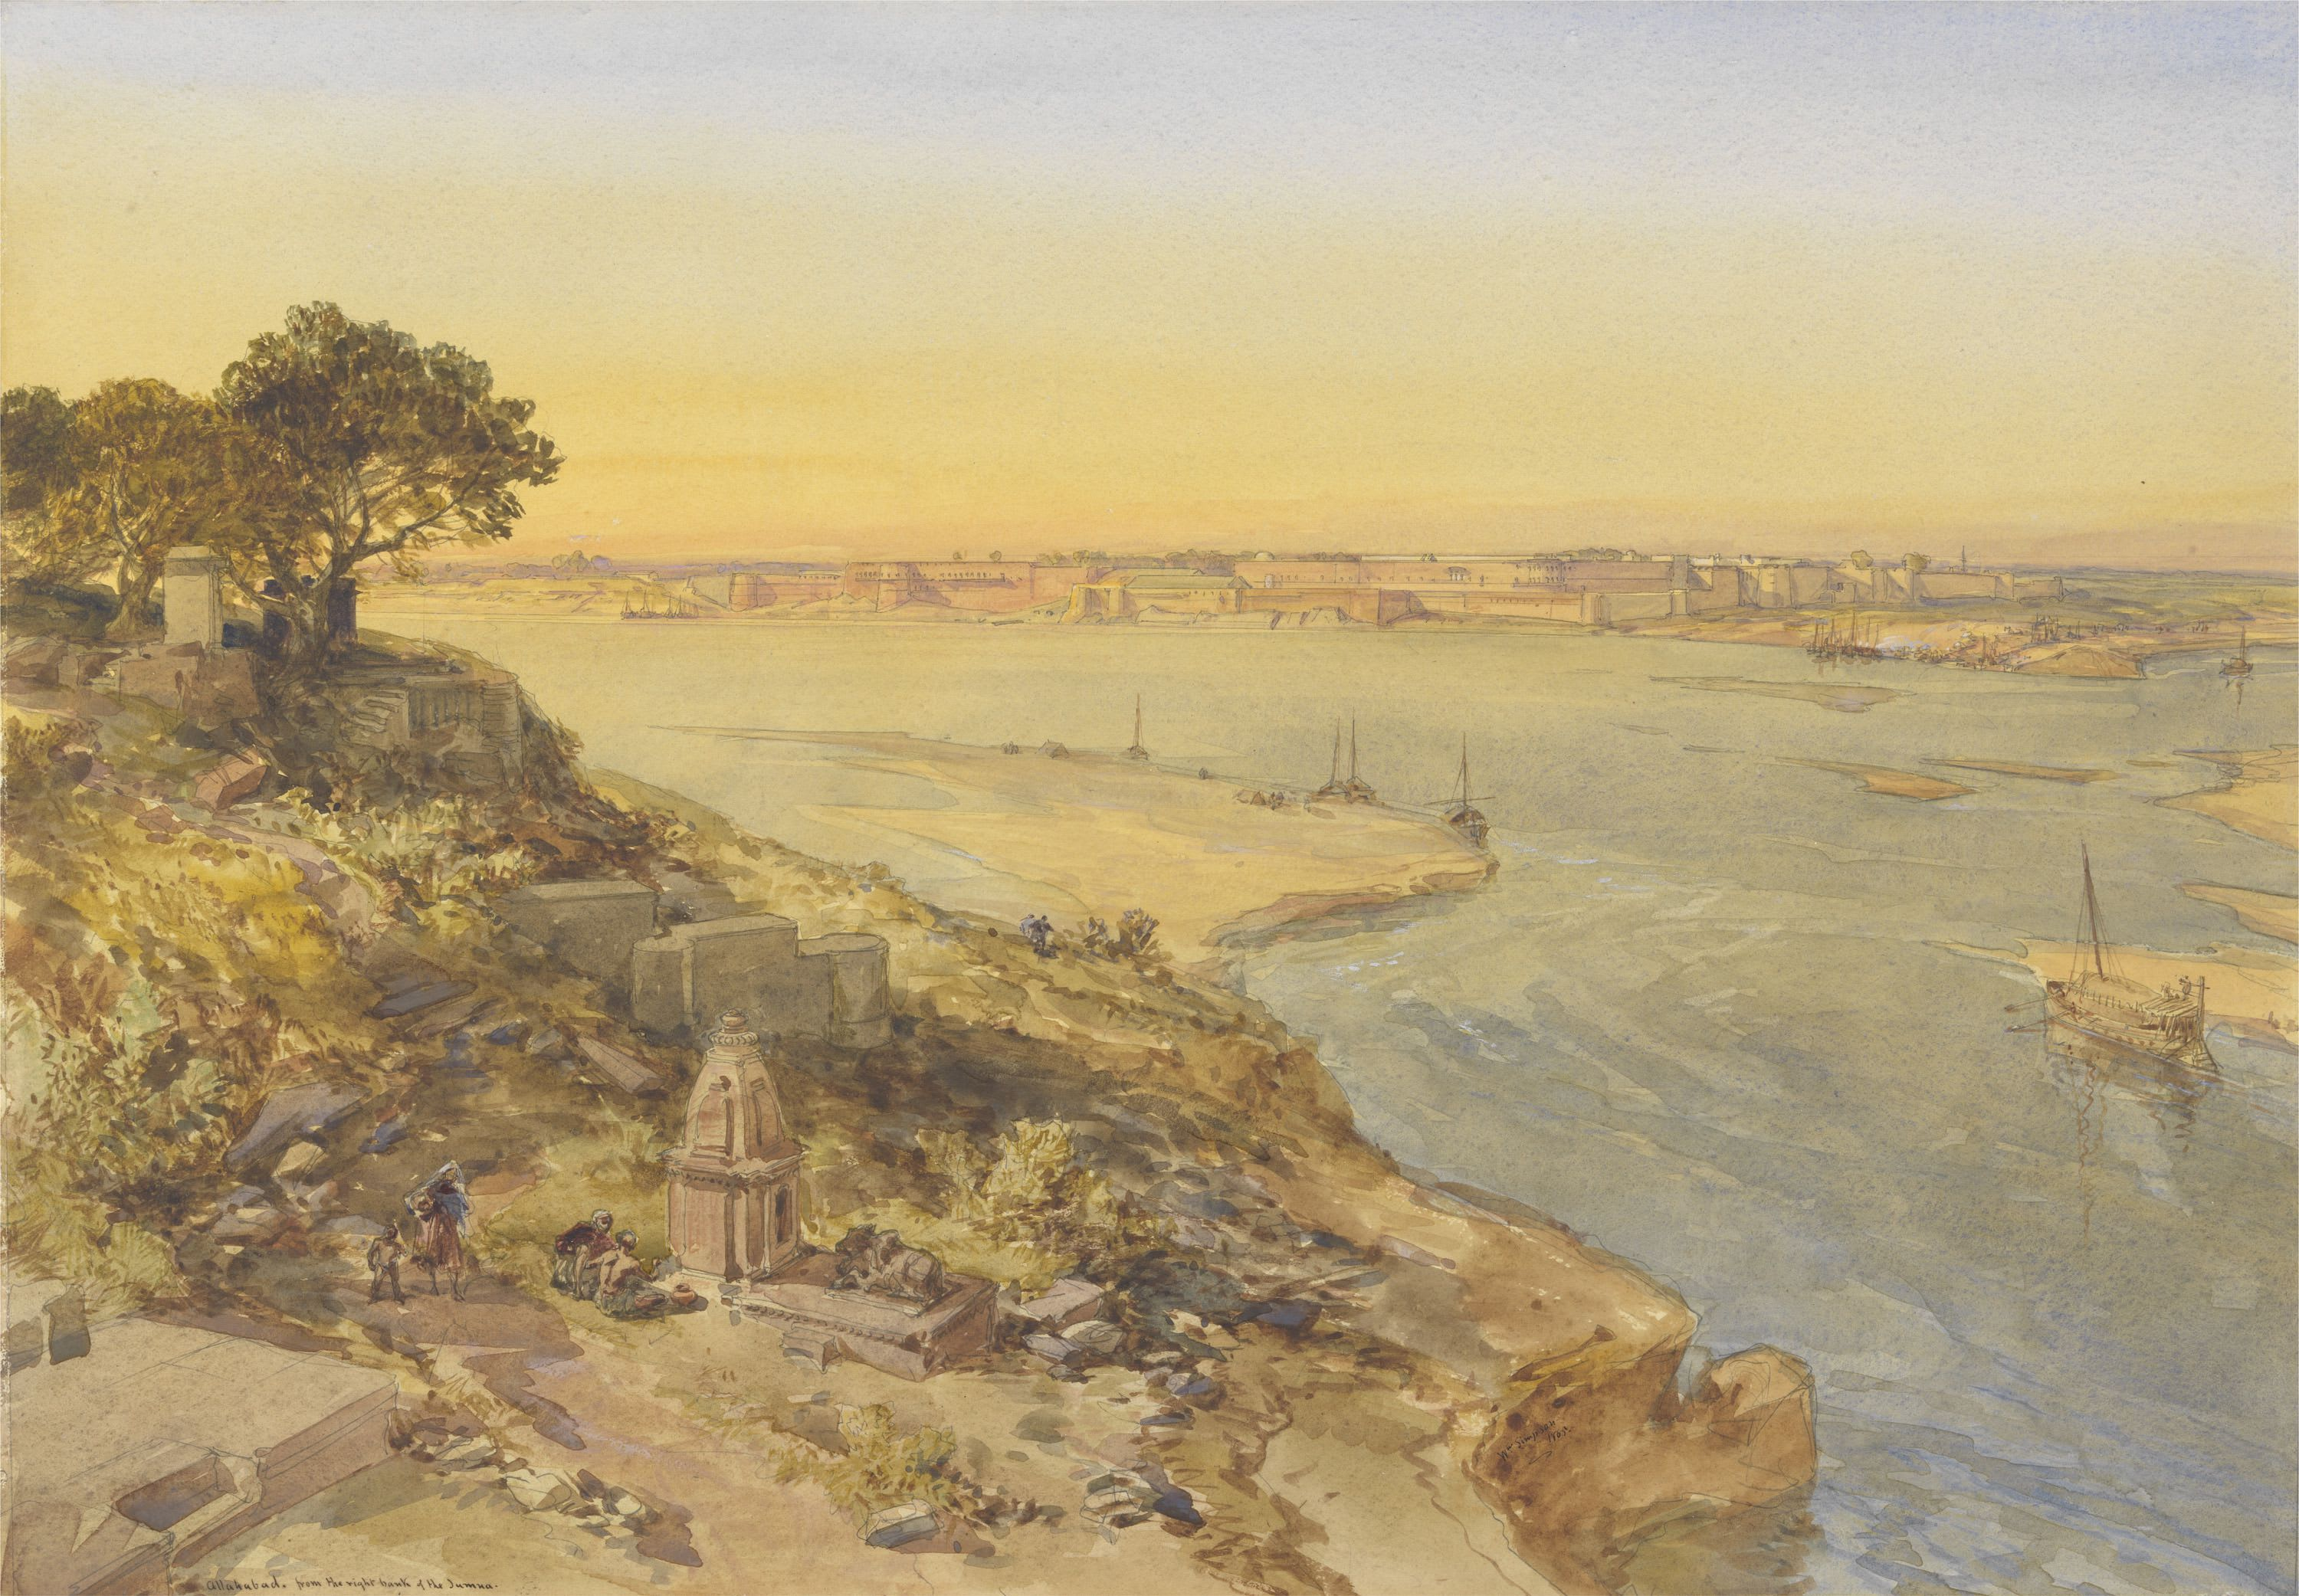 Allahabad, from the Right Bank of the Jumna, 1865, watercolour by William Simpson